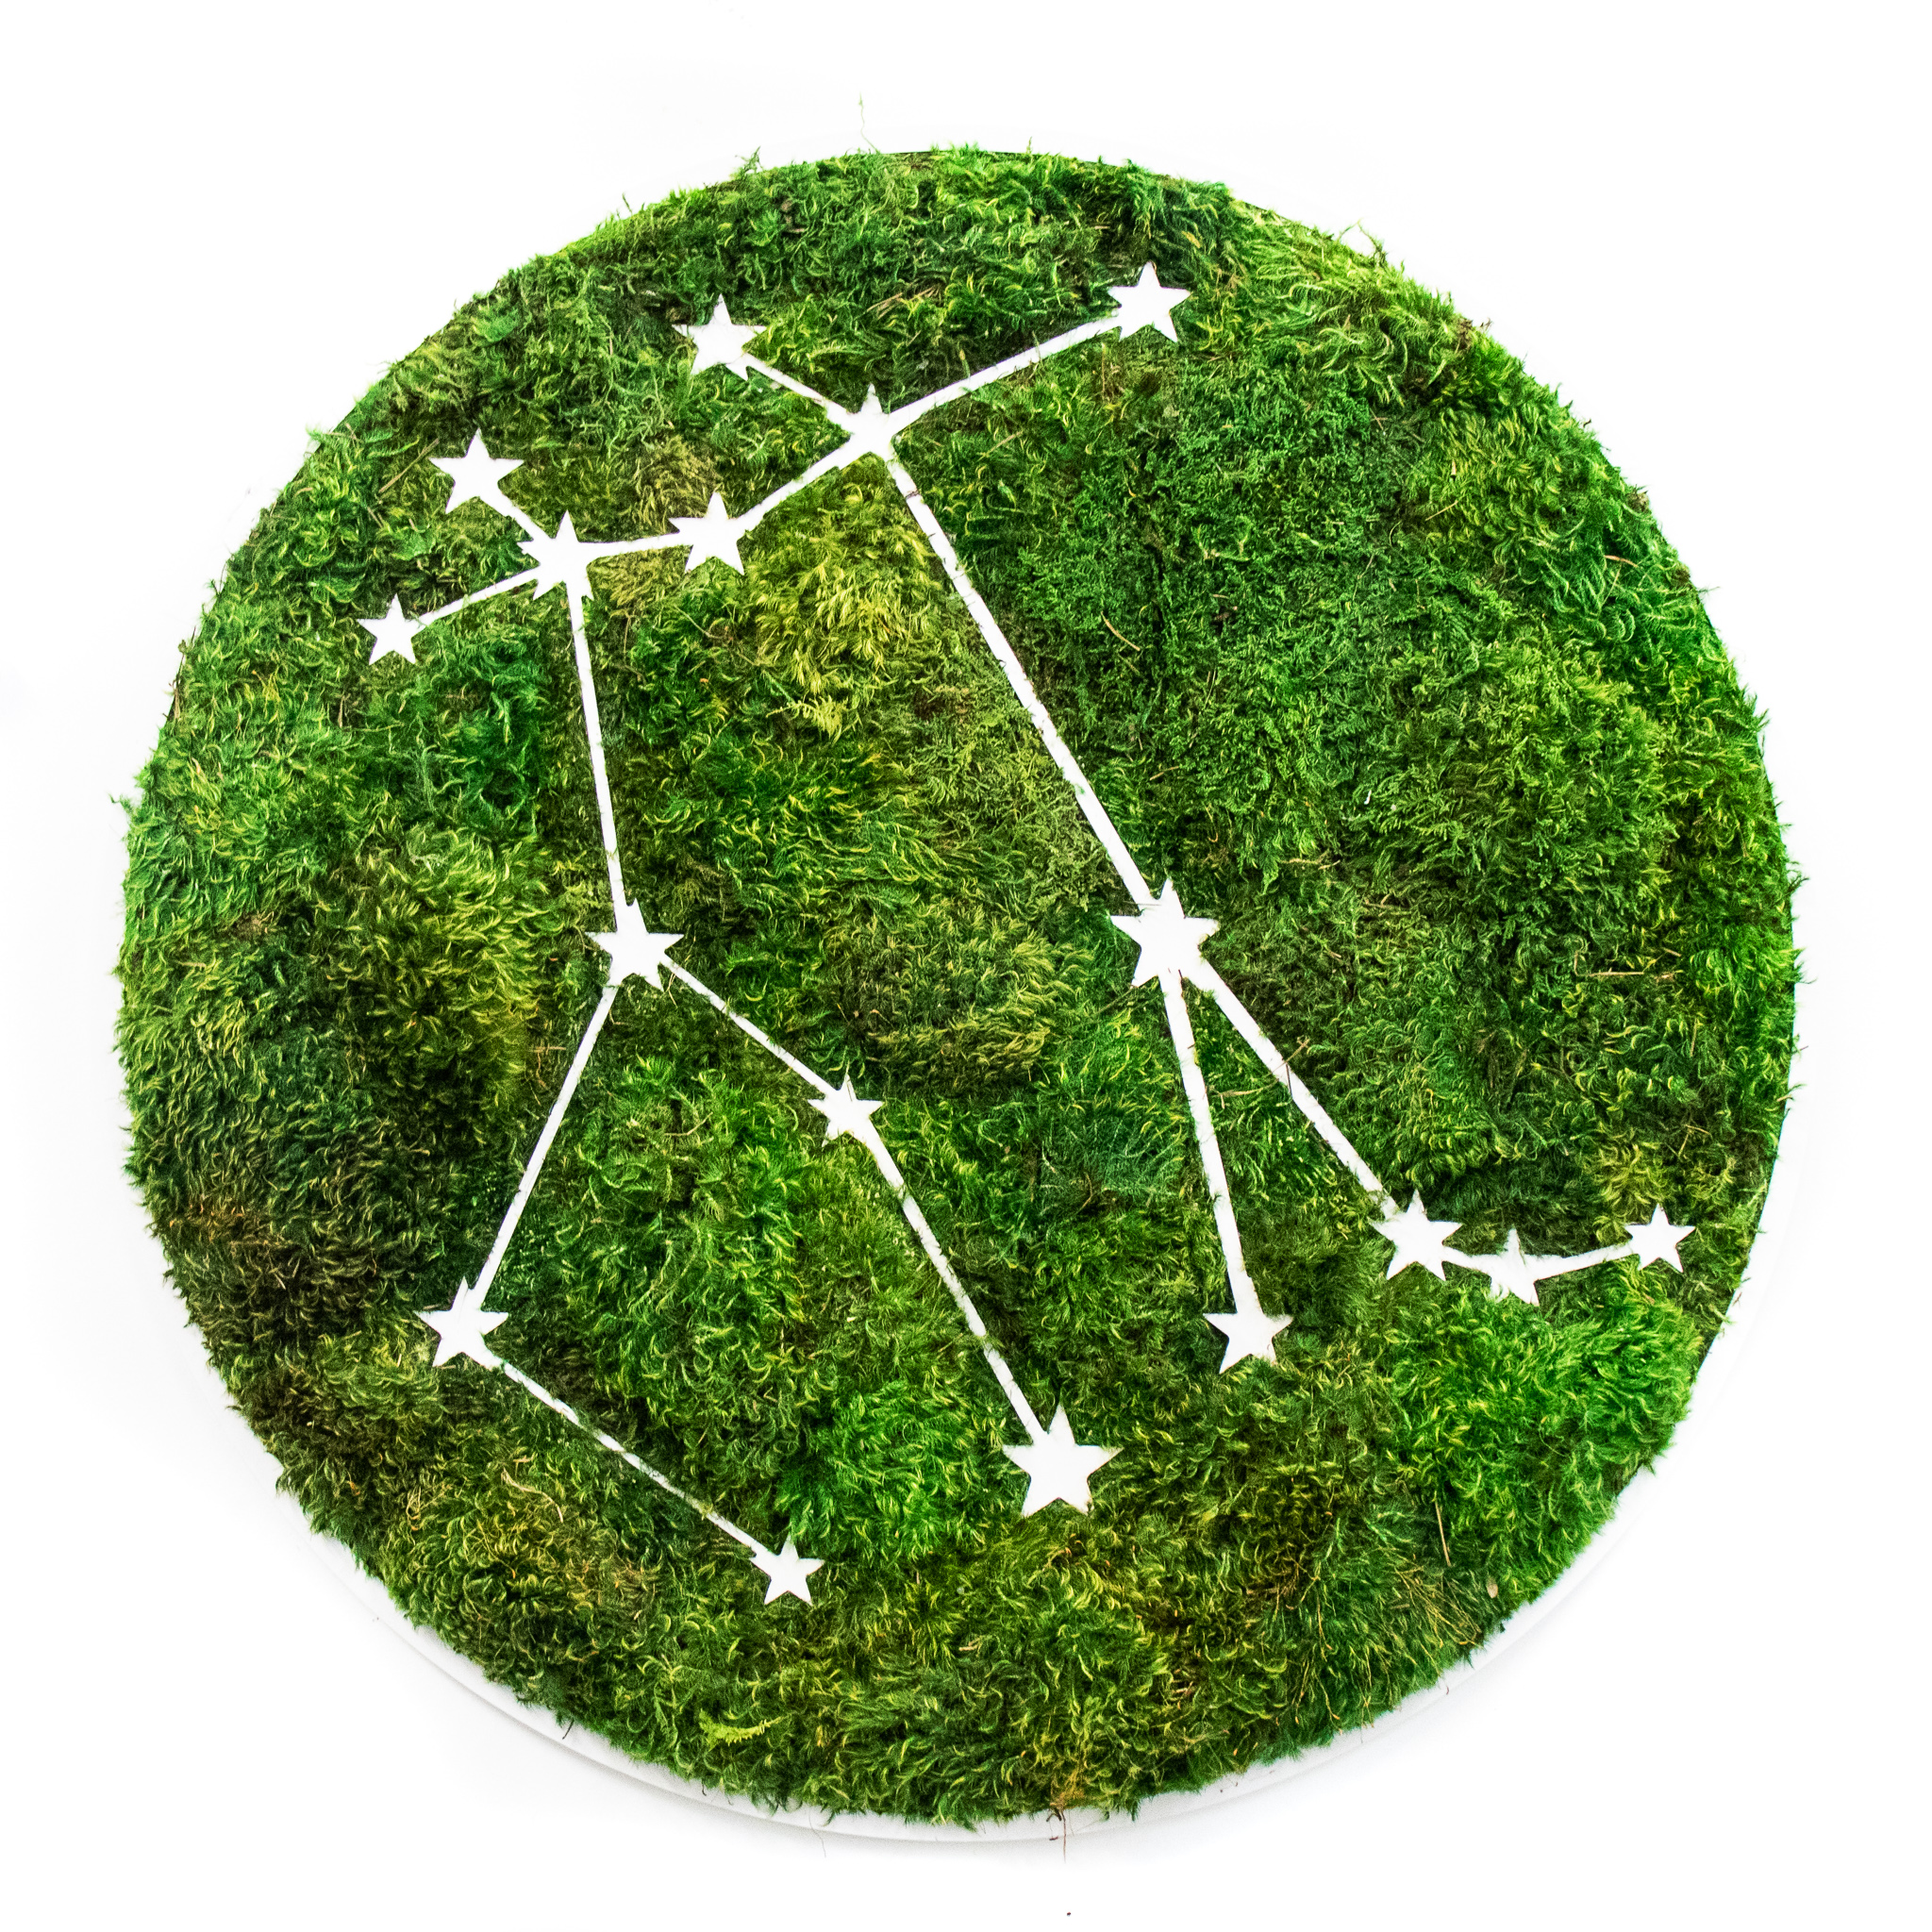 "Gemini Constellation - Moss Wall Art (30"" Diameter)"